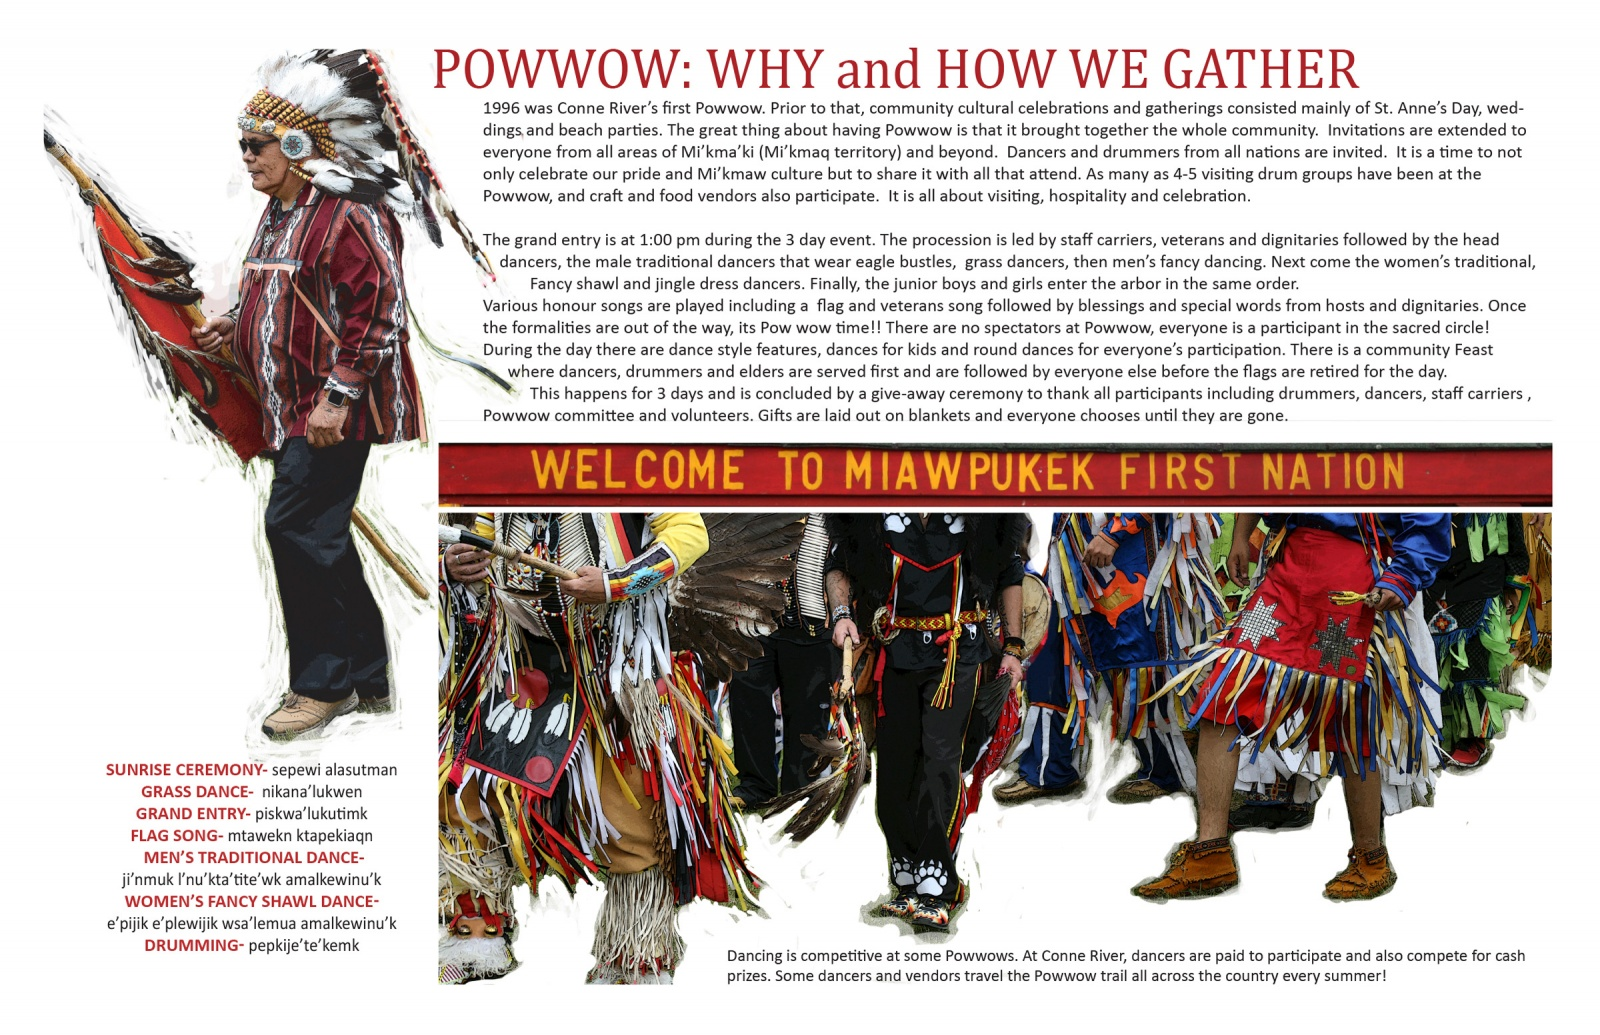 Powwow: Why and How We Gather